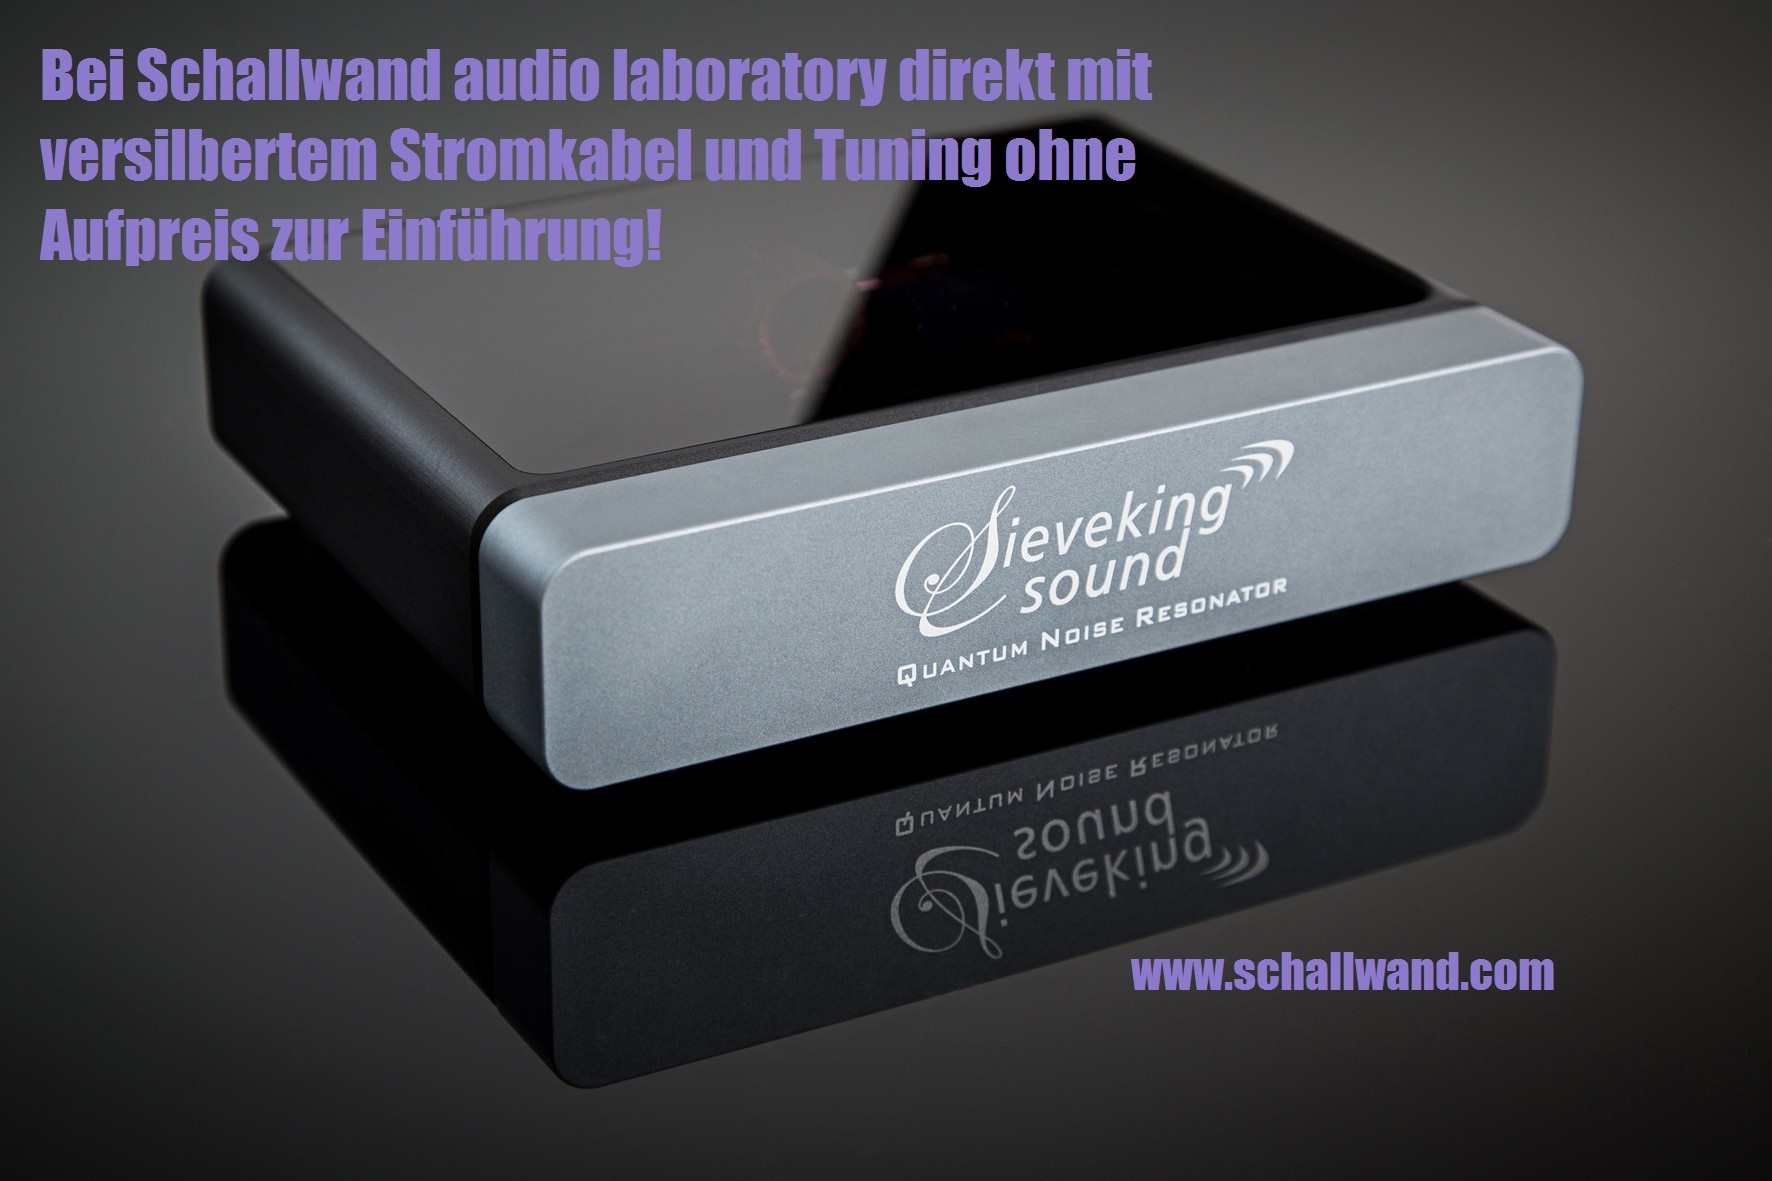 Quantum-Noise-Resonator_mit_Tuning_bei_Schallwand_audio_laboratory